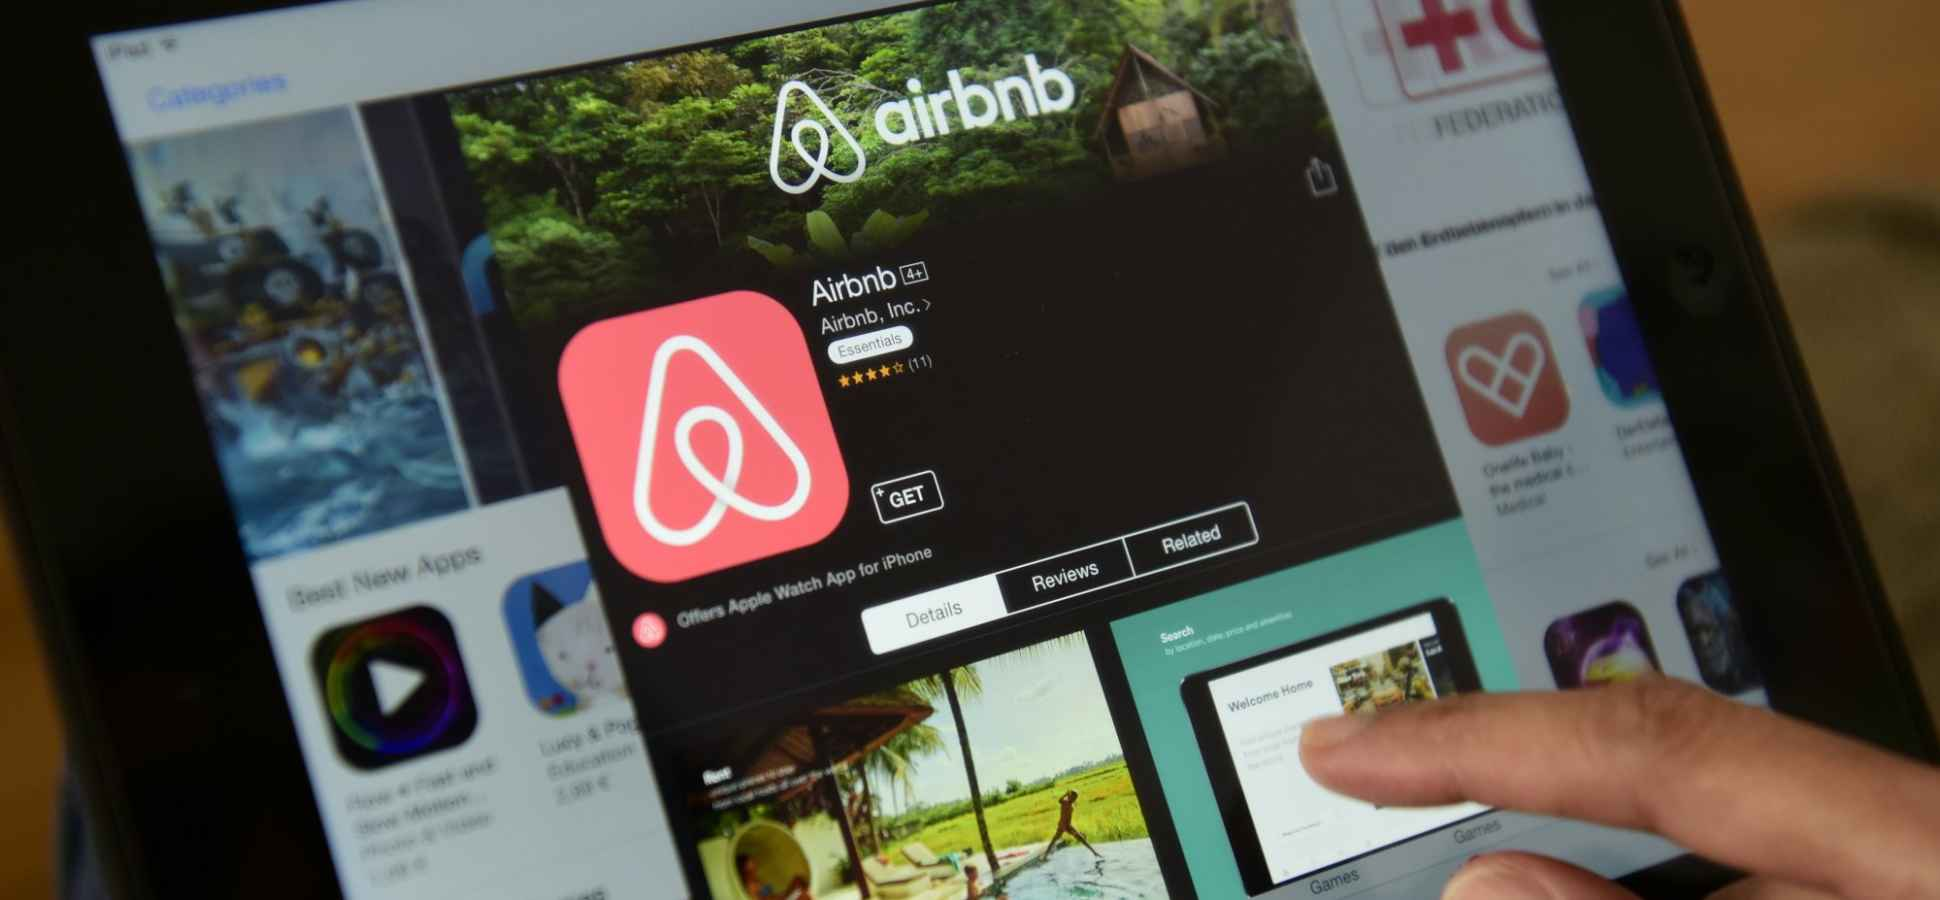 Airbnb books 1 million guests Memorial Day weekend. Here's how they did it.